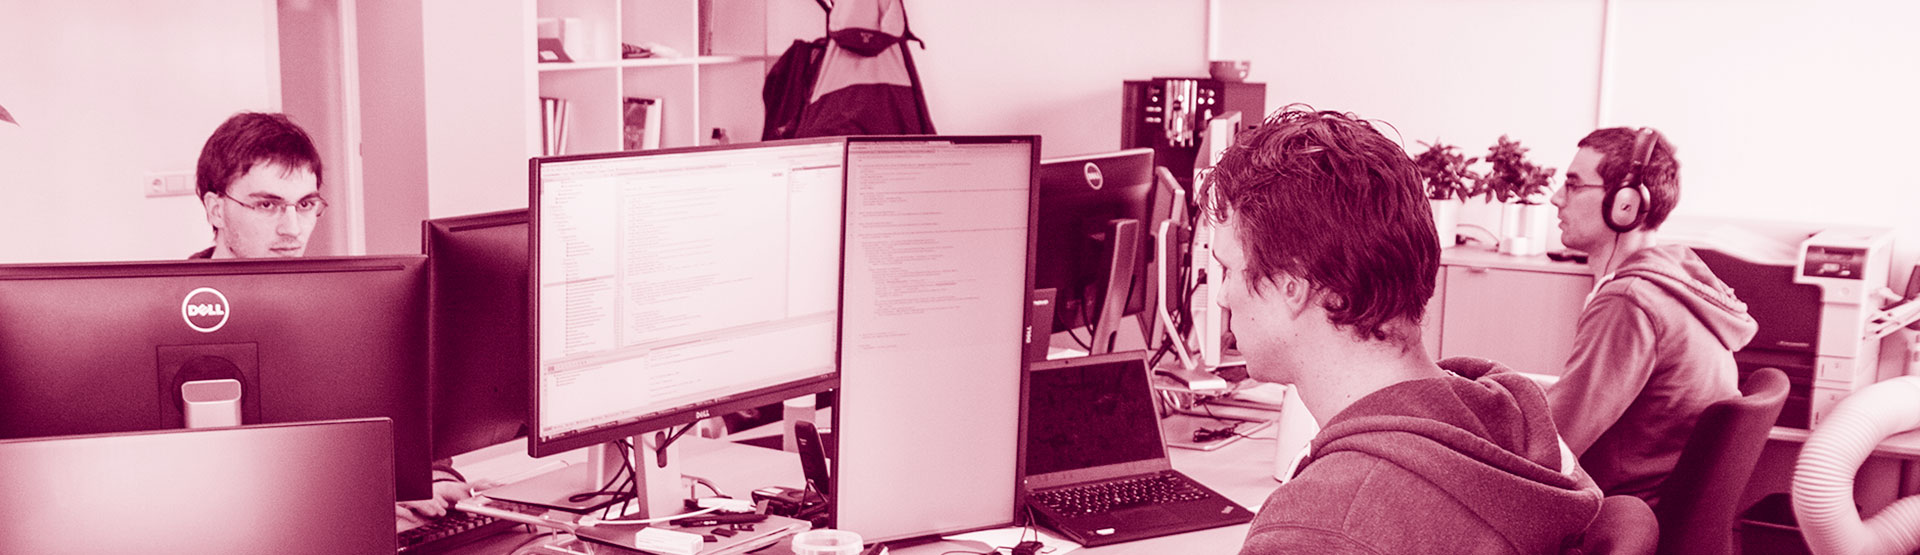 developers kantoor delft team duotone